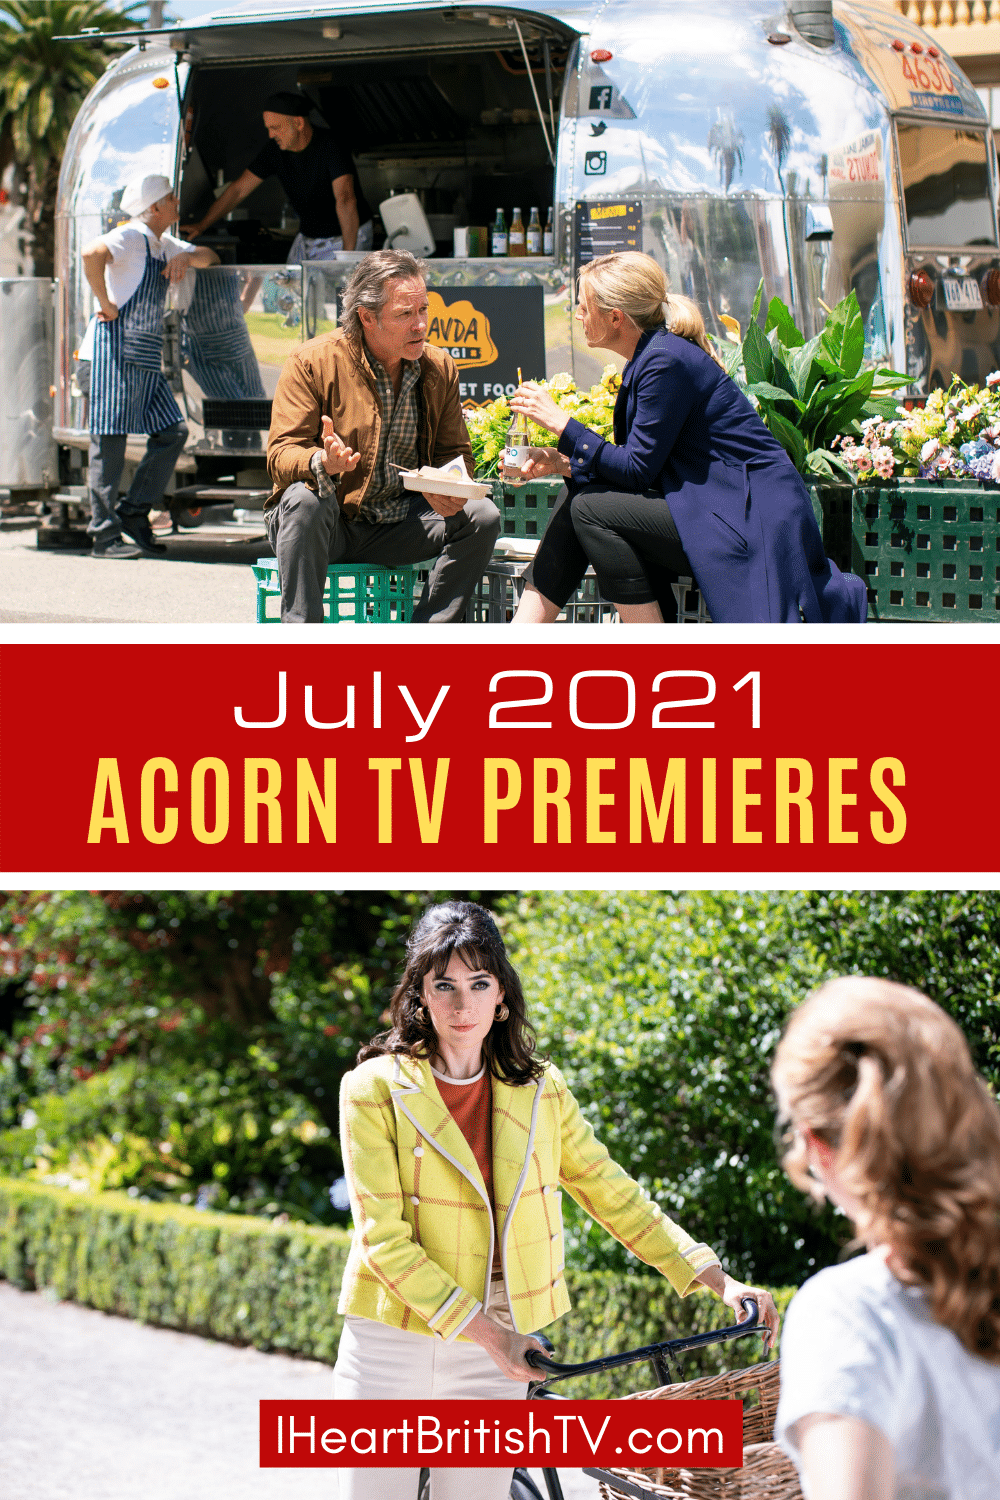 July British TV Premieres: What's New on Acorn TV for July 2021? 10